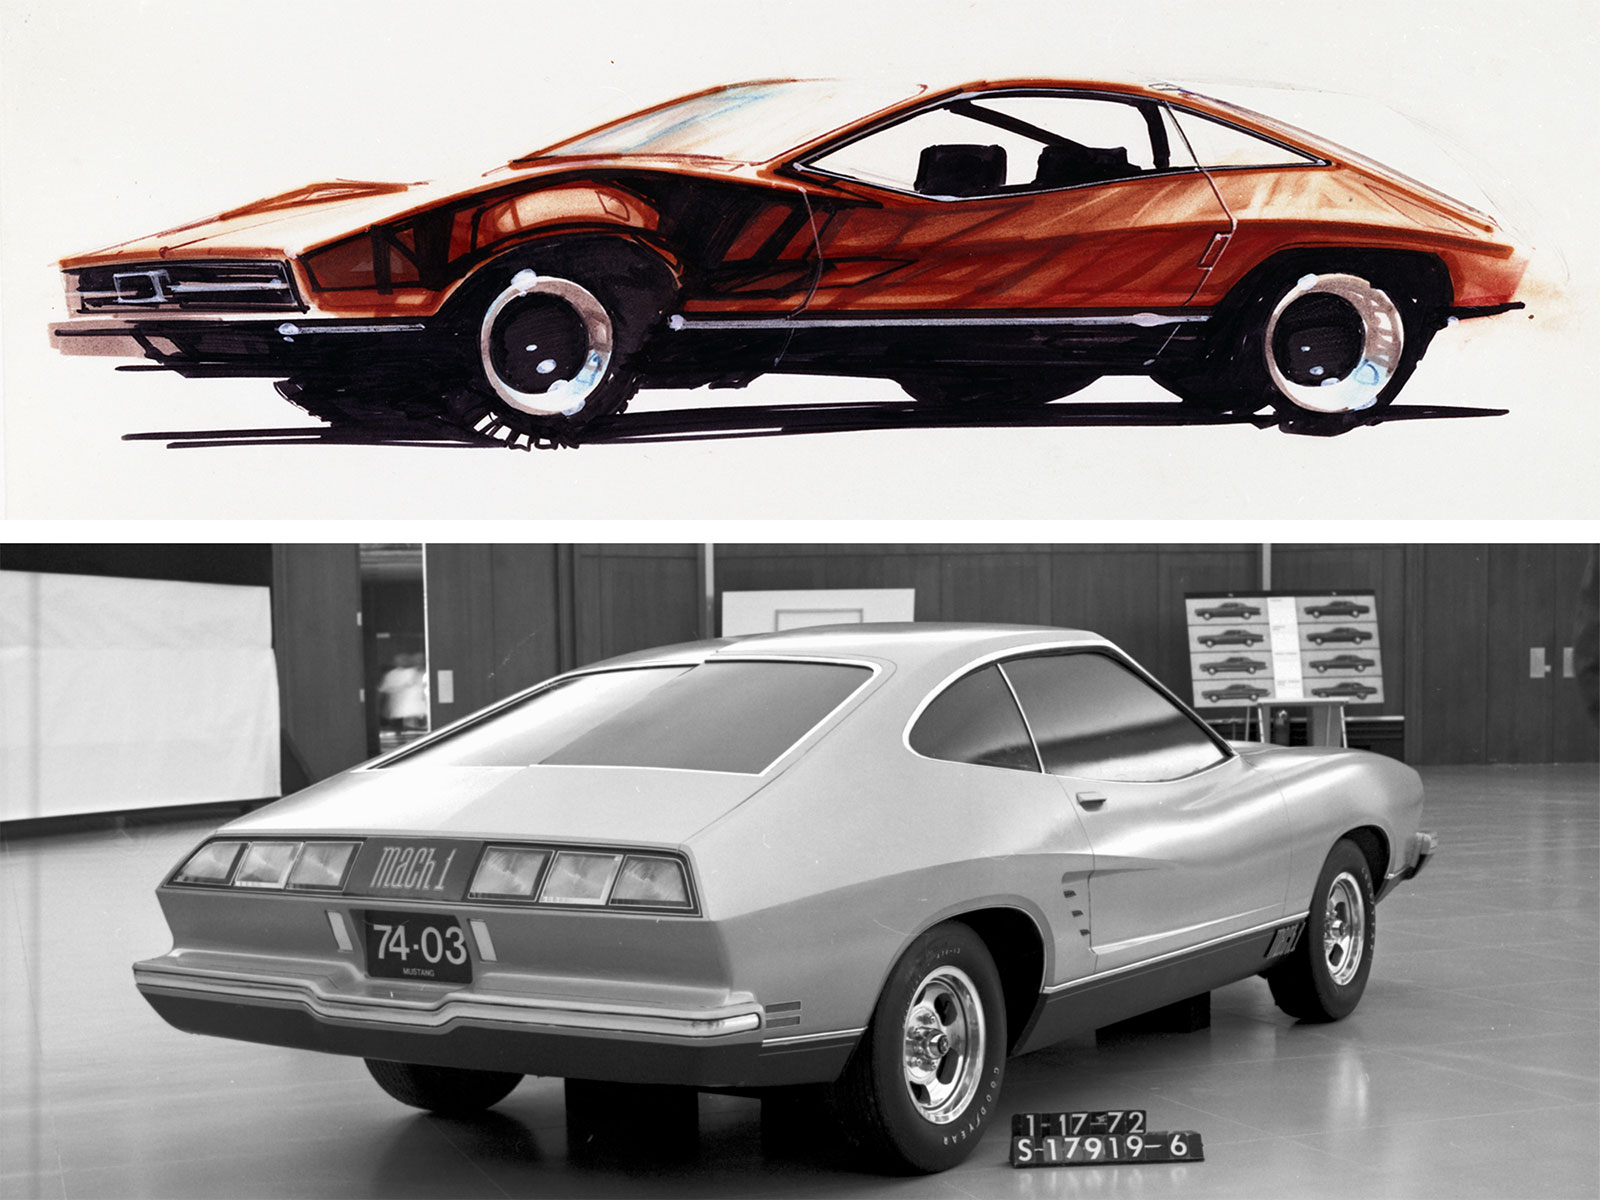 1974 Mustang II From Sketch To Production Car Body Design